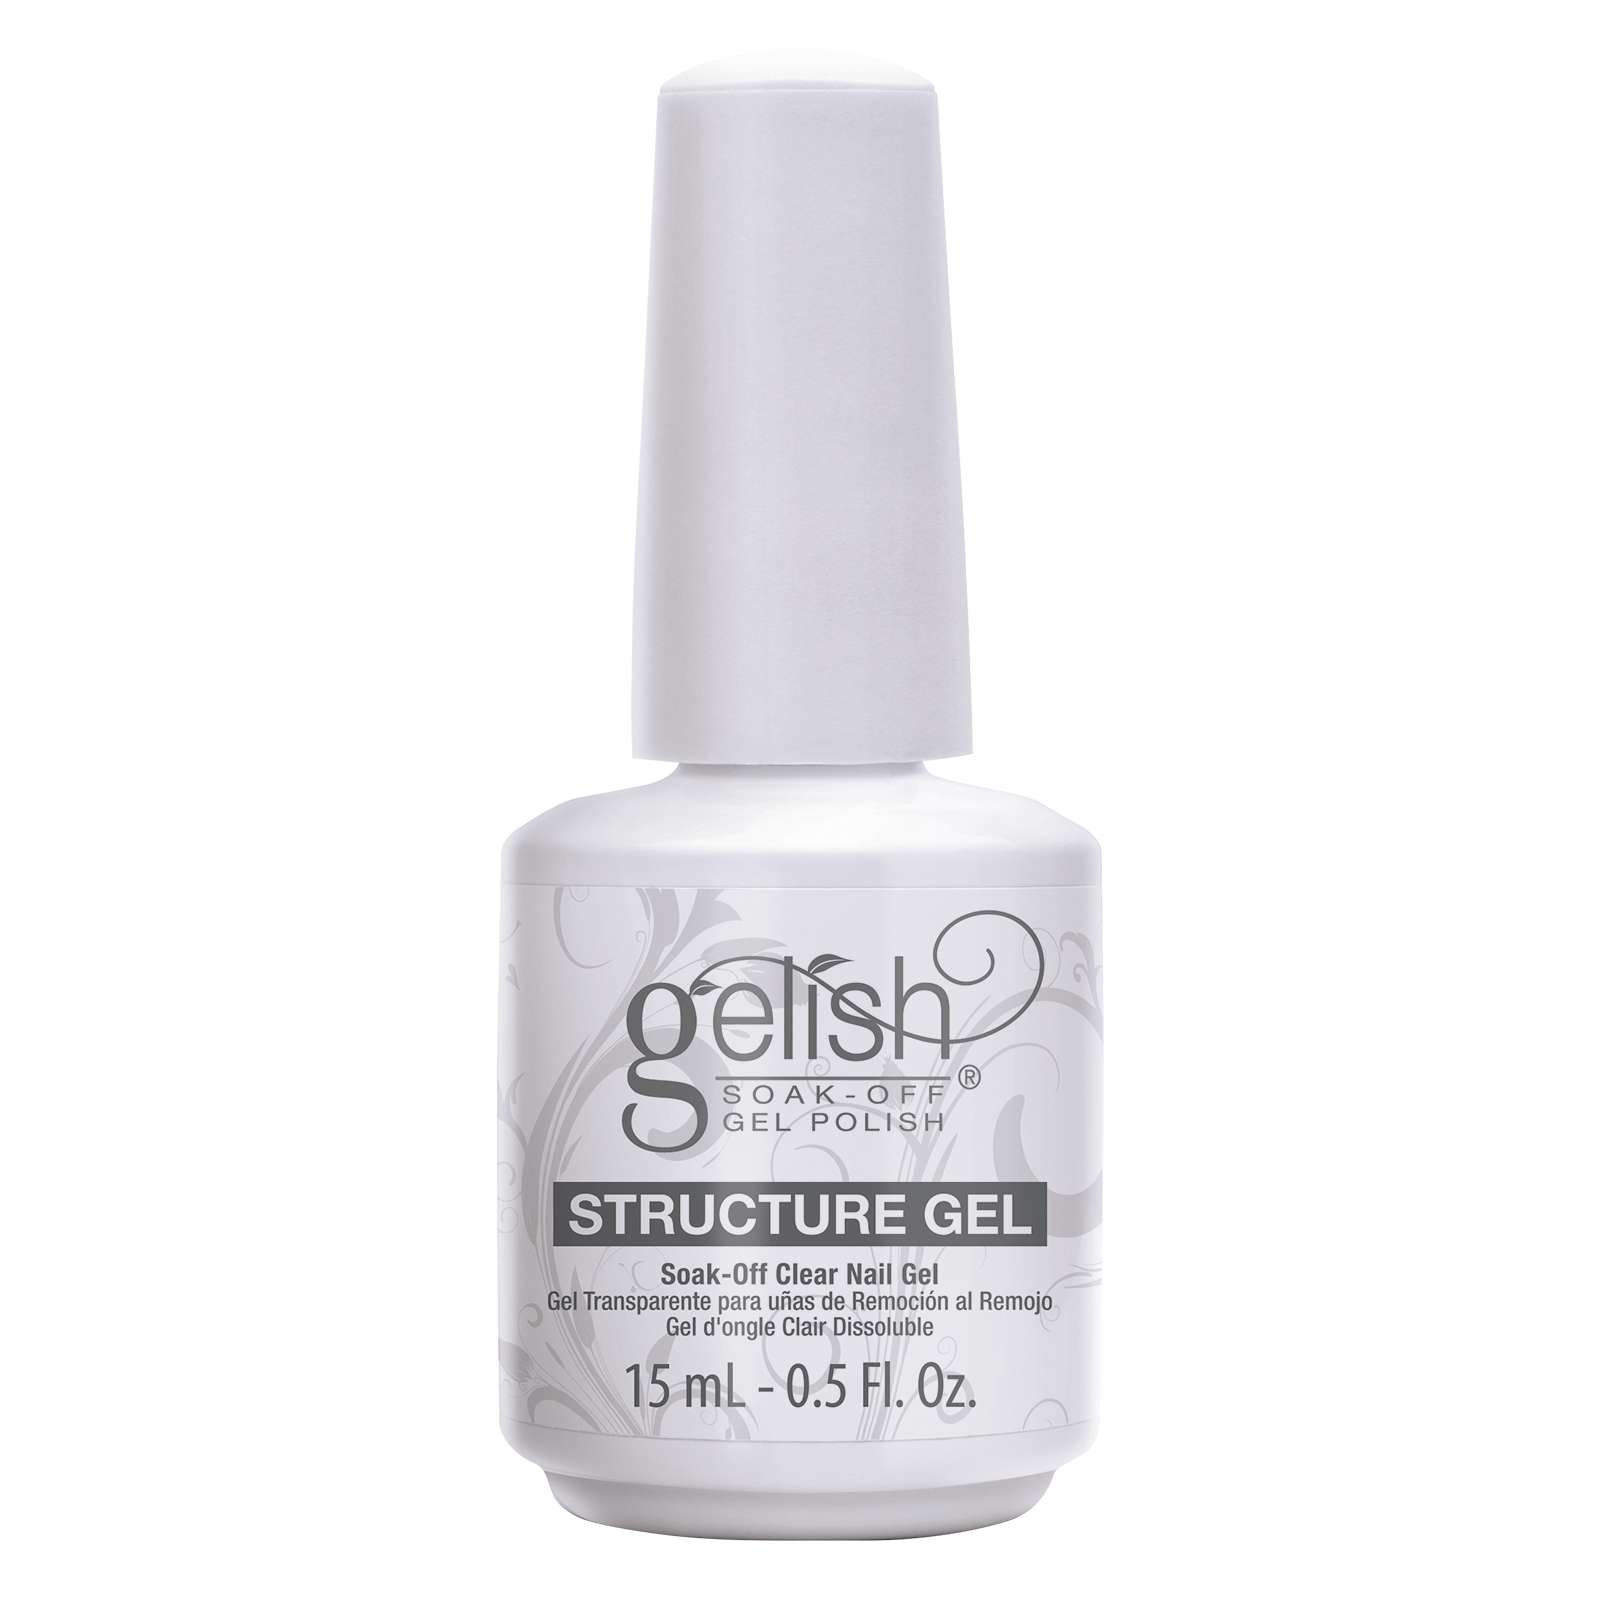 how to clean gelish brush